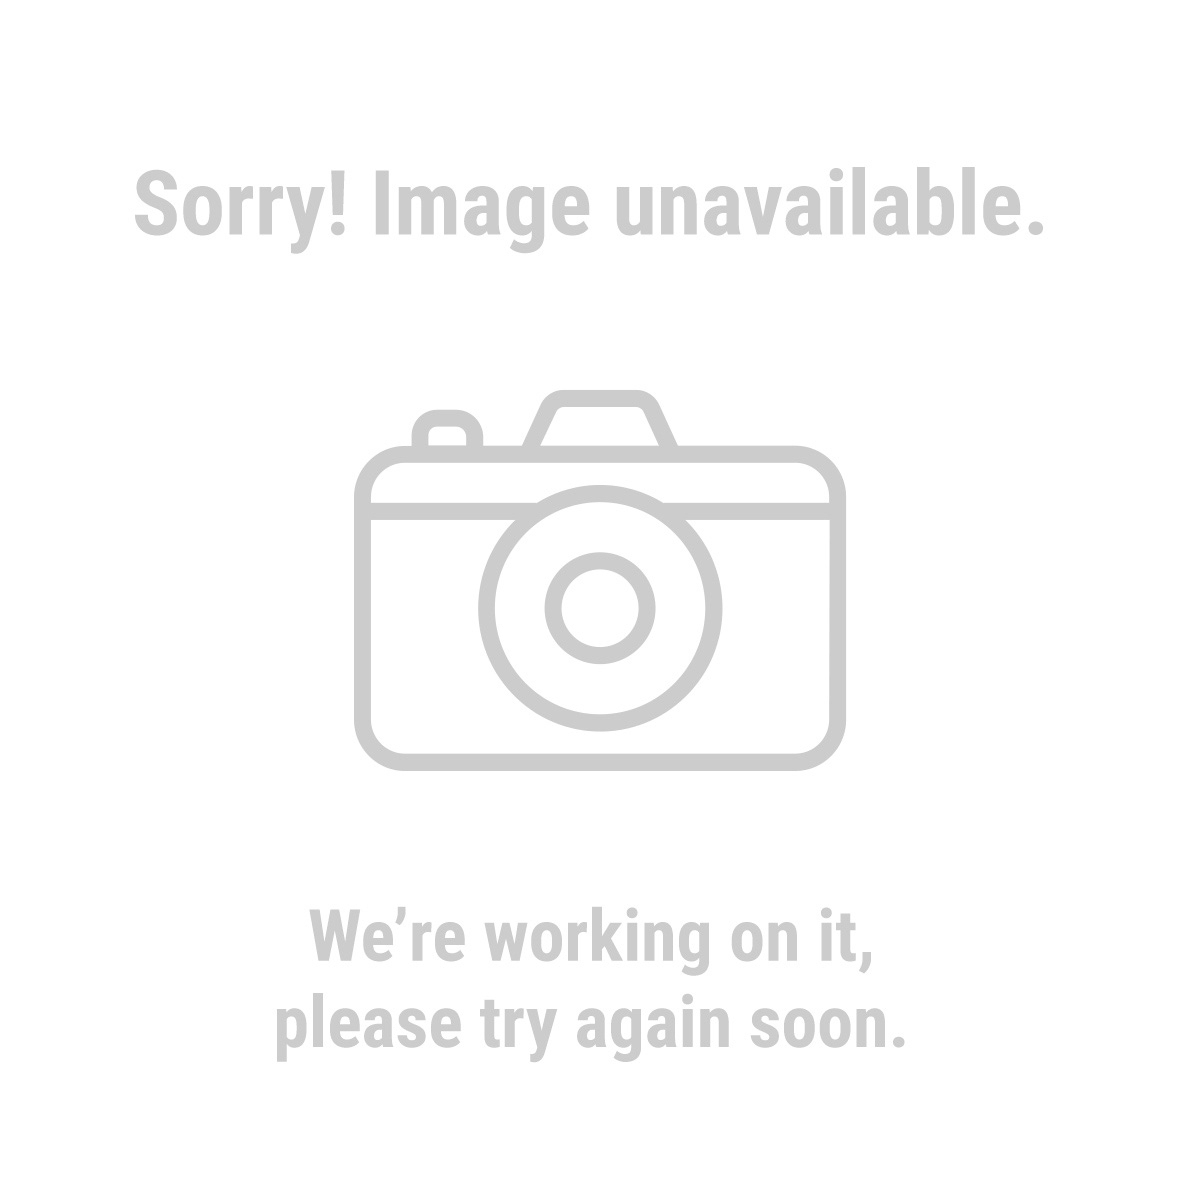 38896 Magnifier Head Strap With Lights